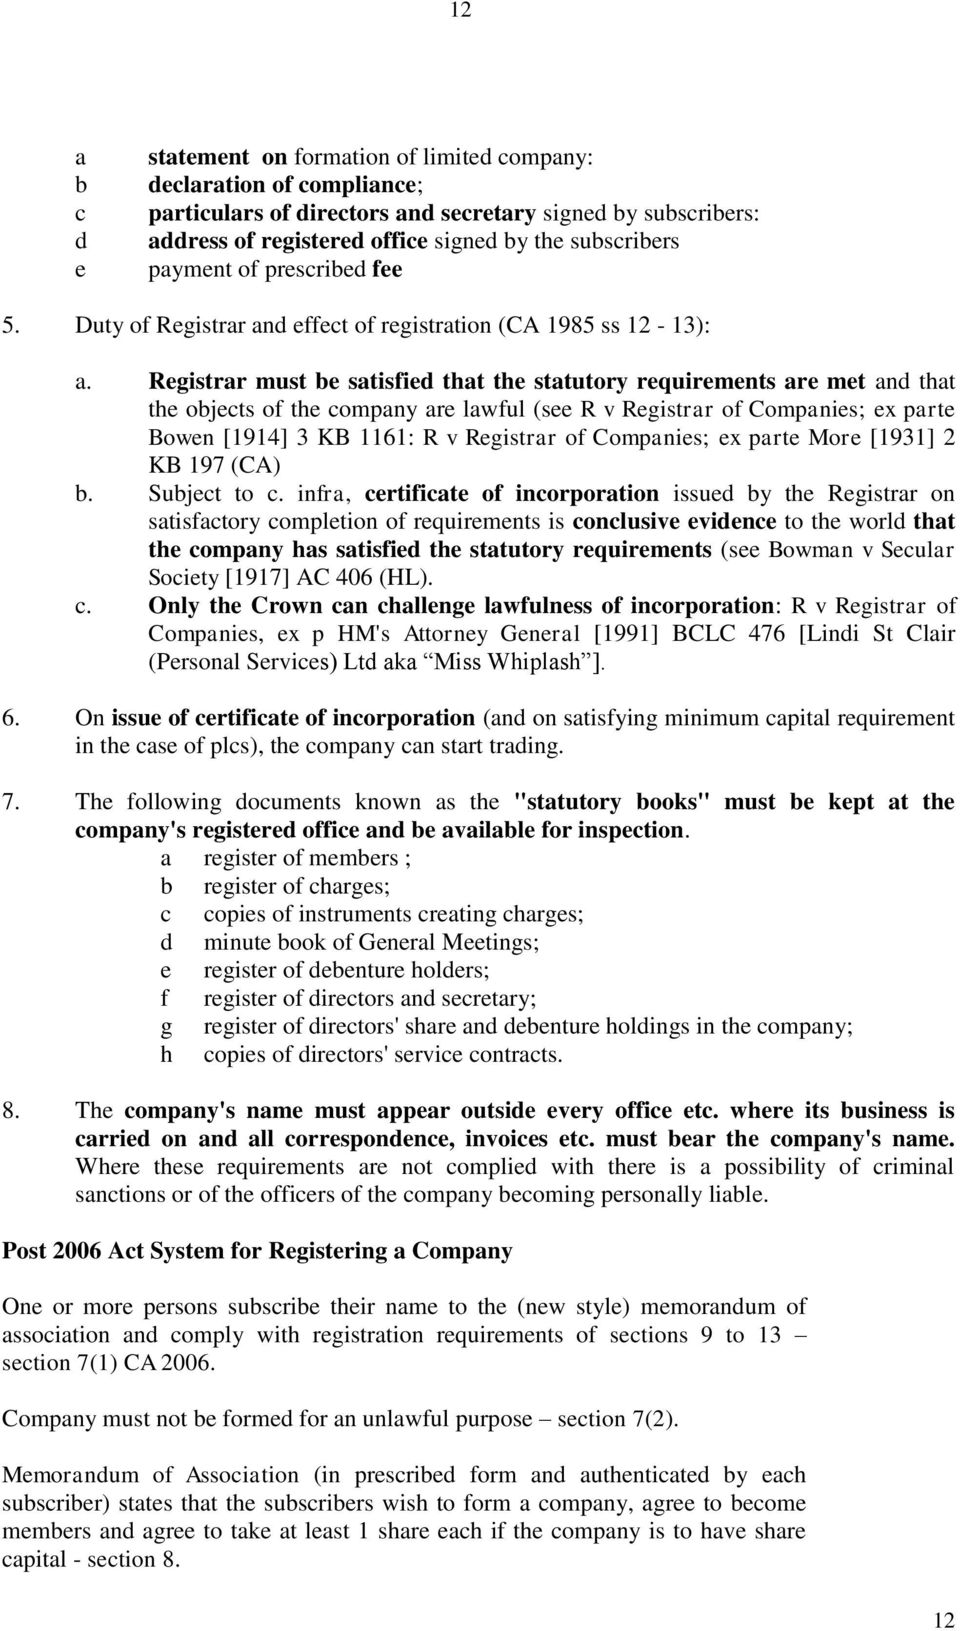 Registrar must be satisfied that the statutory requirements are met and that the objects of the company are lawful (see R v Registrar of Companies; ex parte Bowen [1914] 3 KB 1161: R v Registrar of